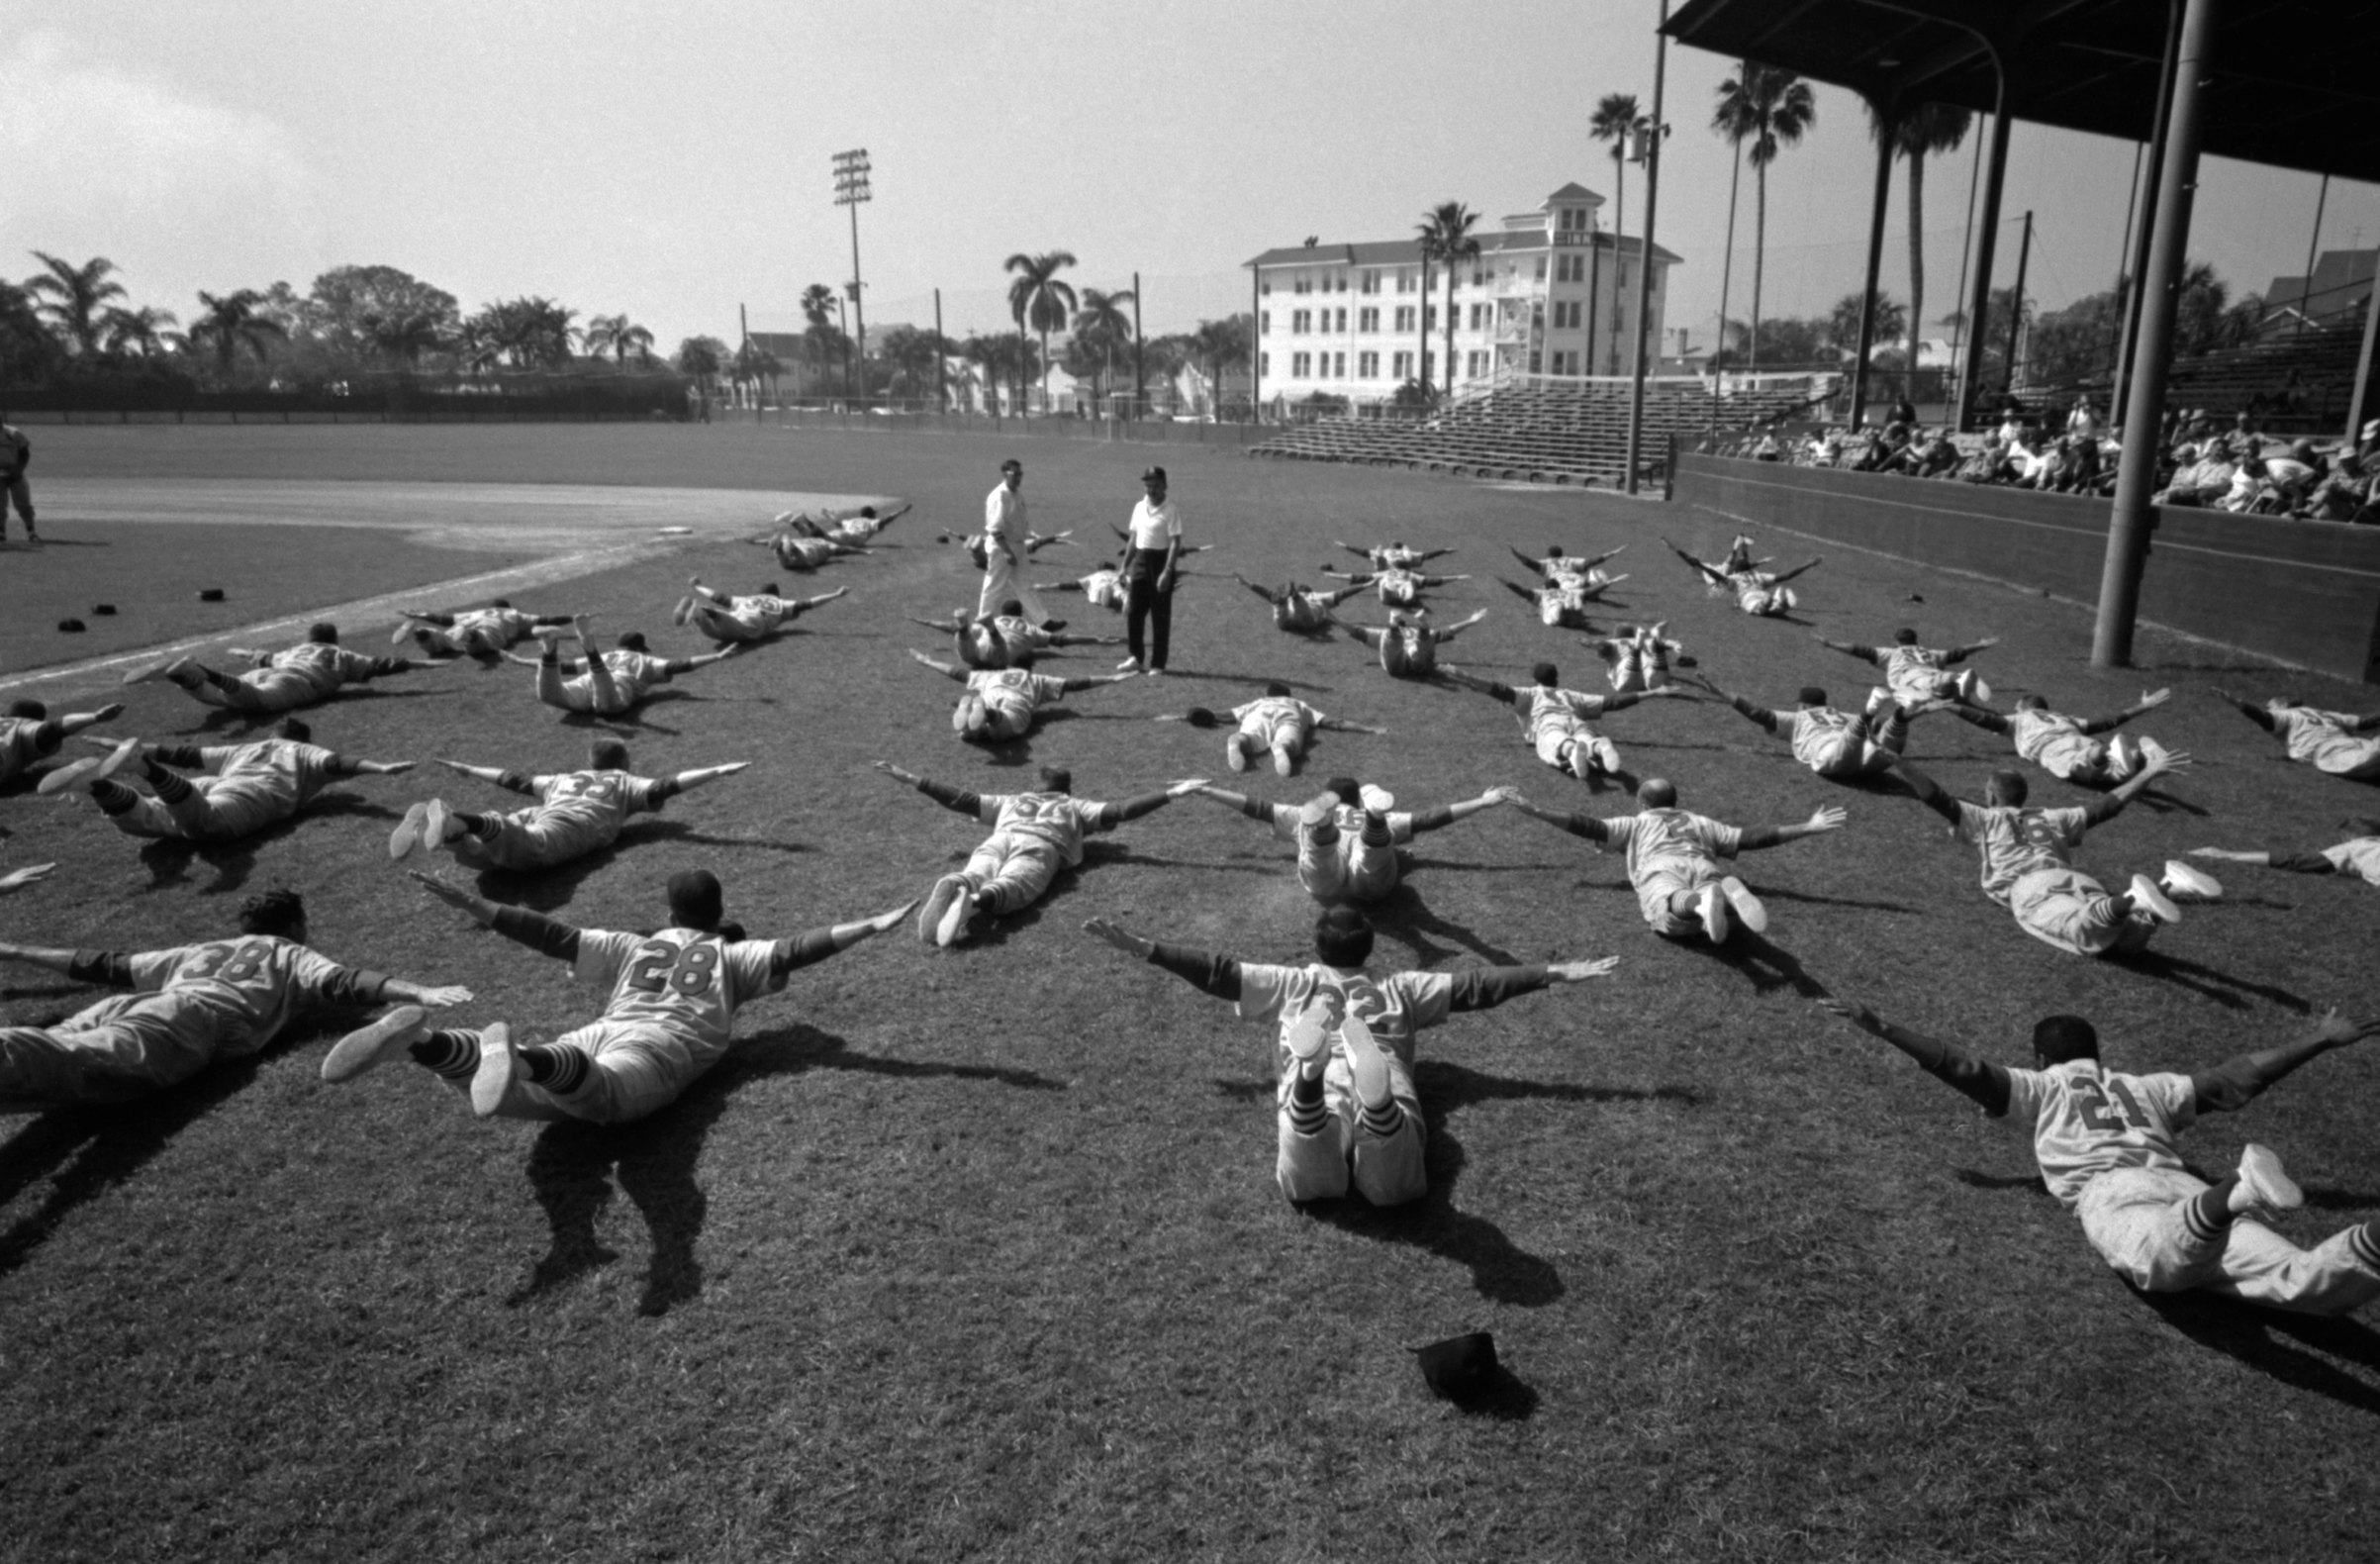 Members of the St. Louis Cardinals stretch during Spring Training in March, 1960 at Al Lang Field in St. Petersburg, Fla.